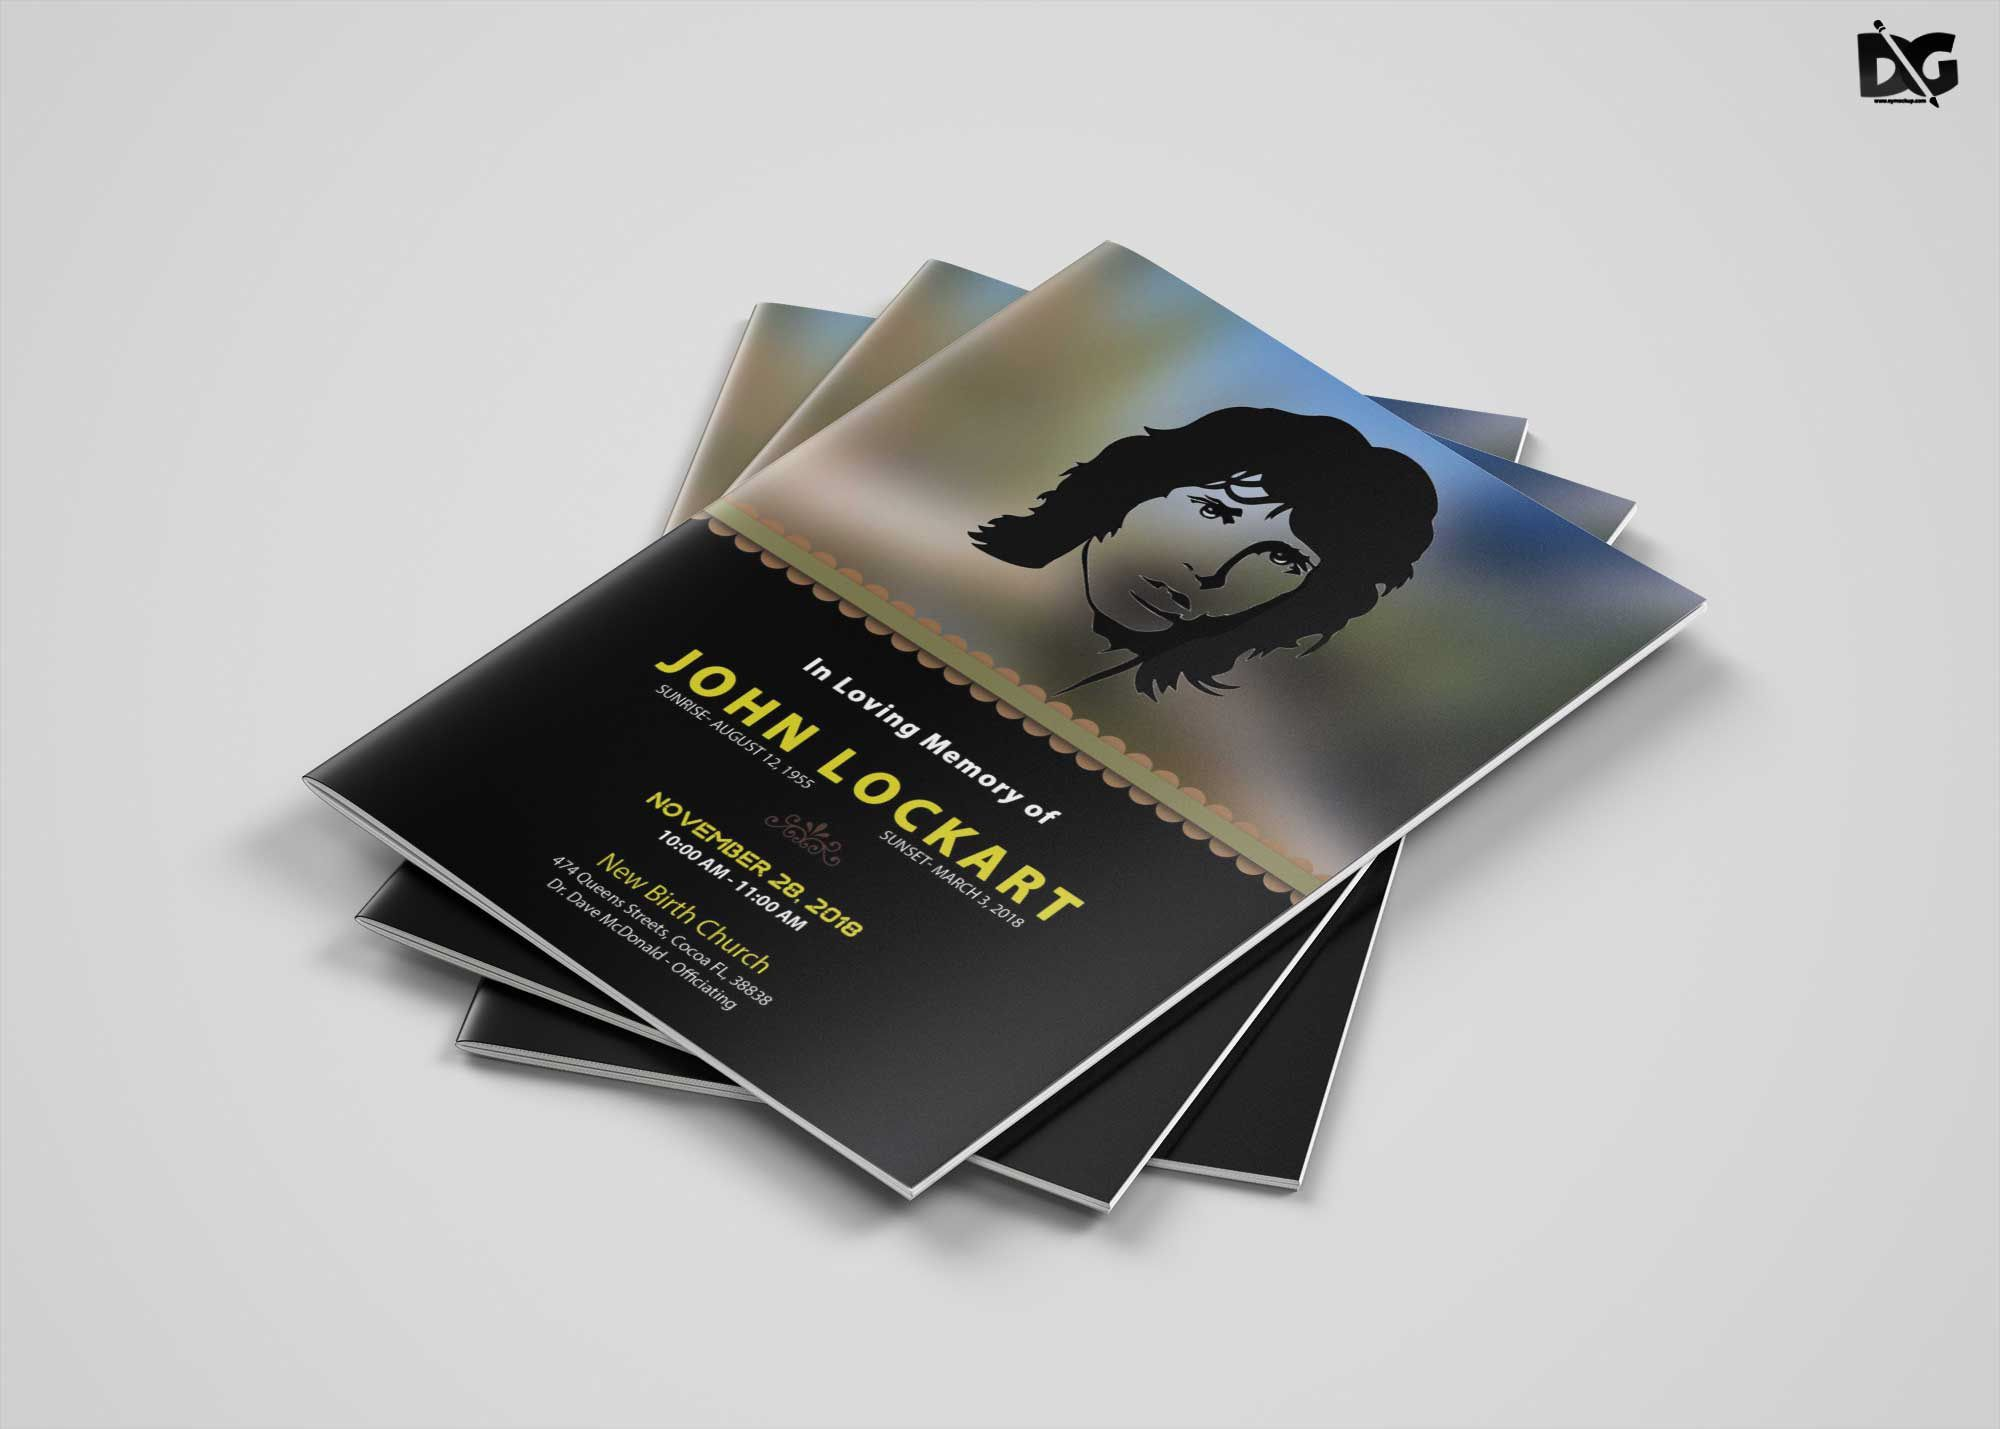 005 Wonderful A4 Brochure Template Psd Free Download Sample  Tri Fold BifoldFull